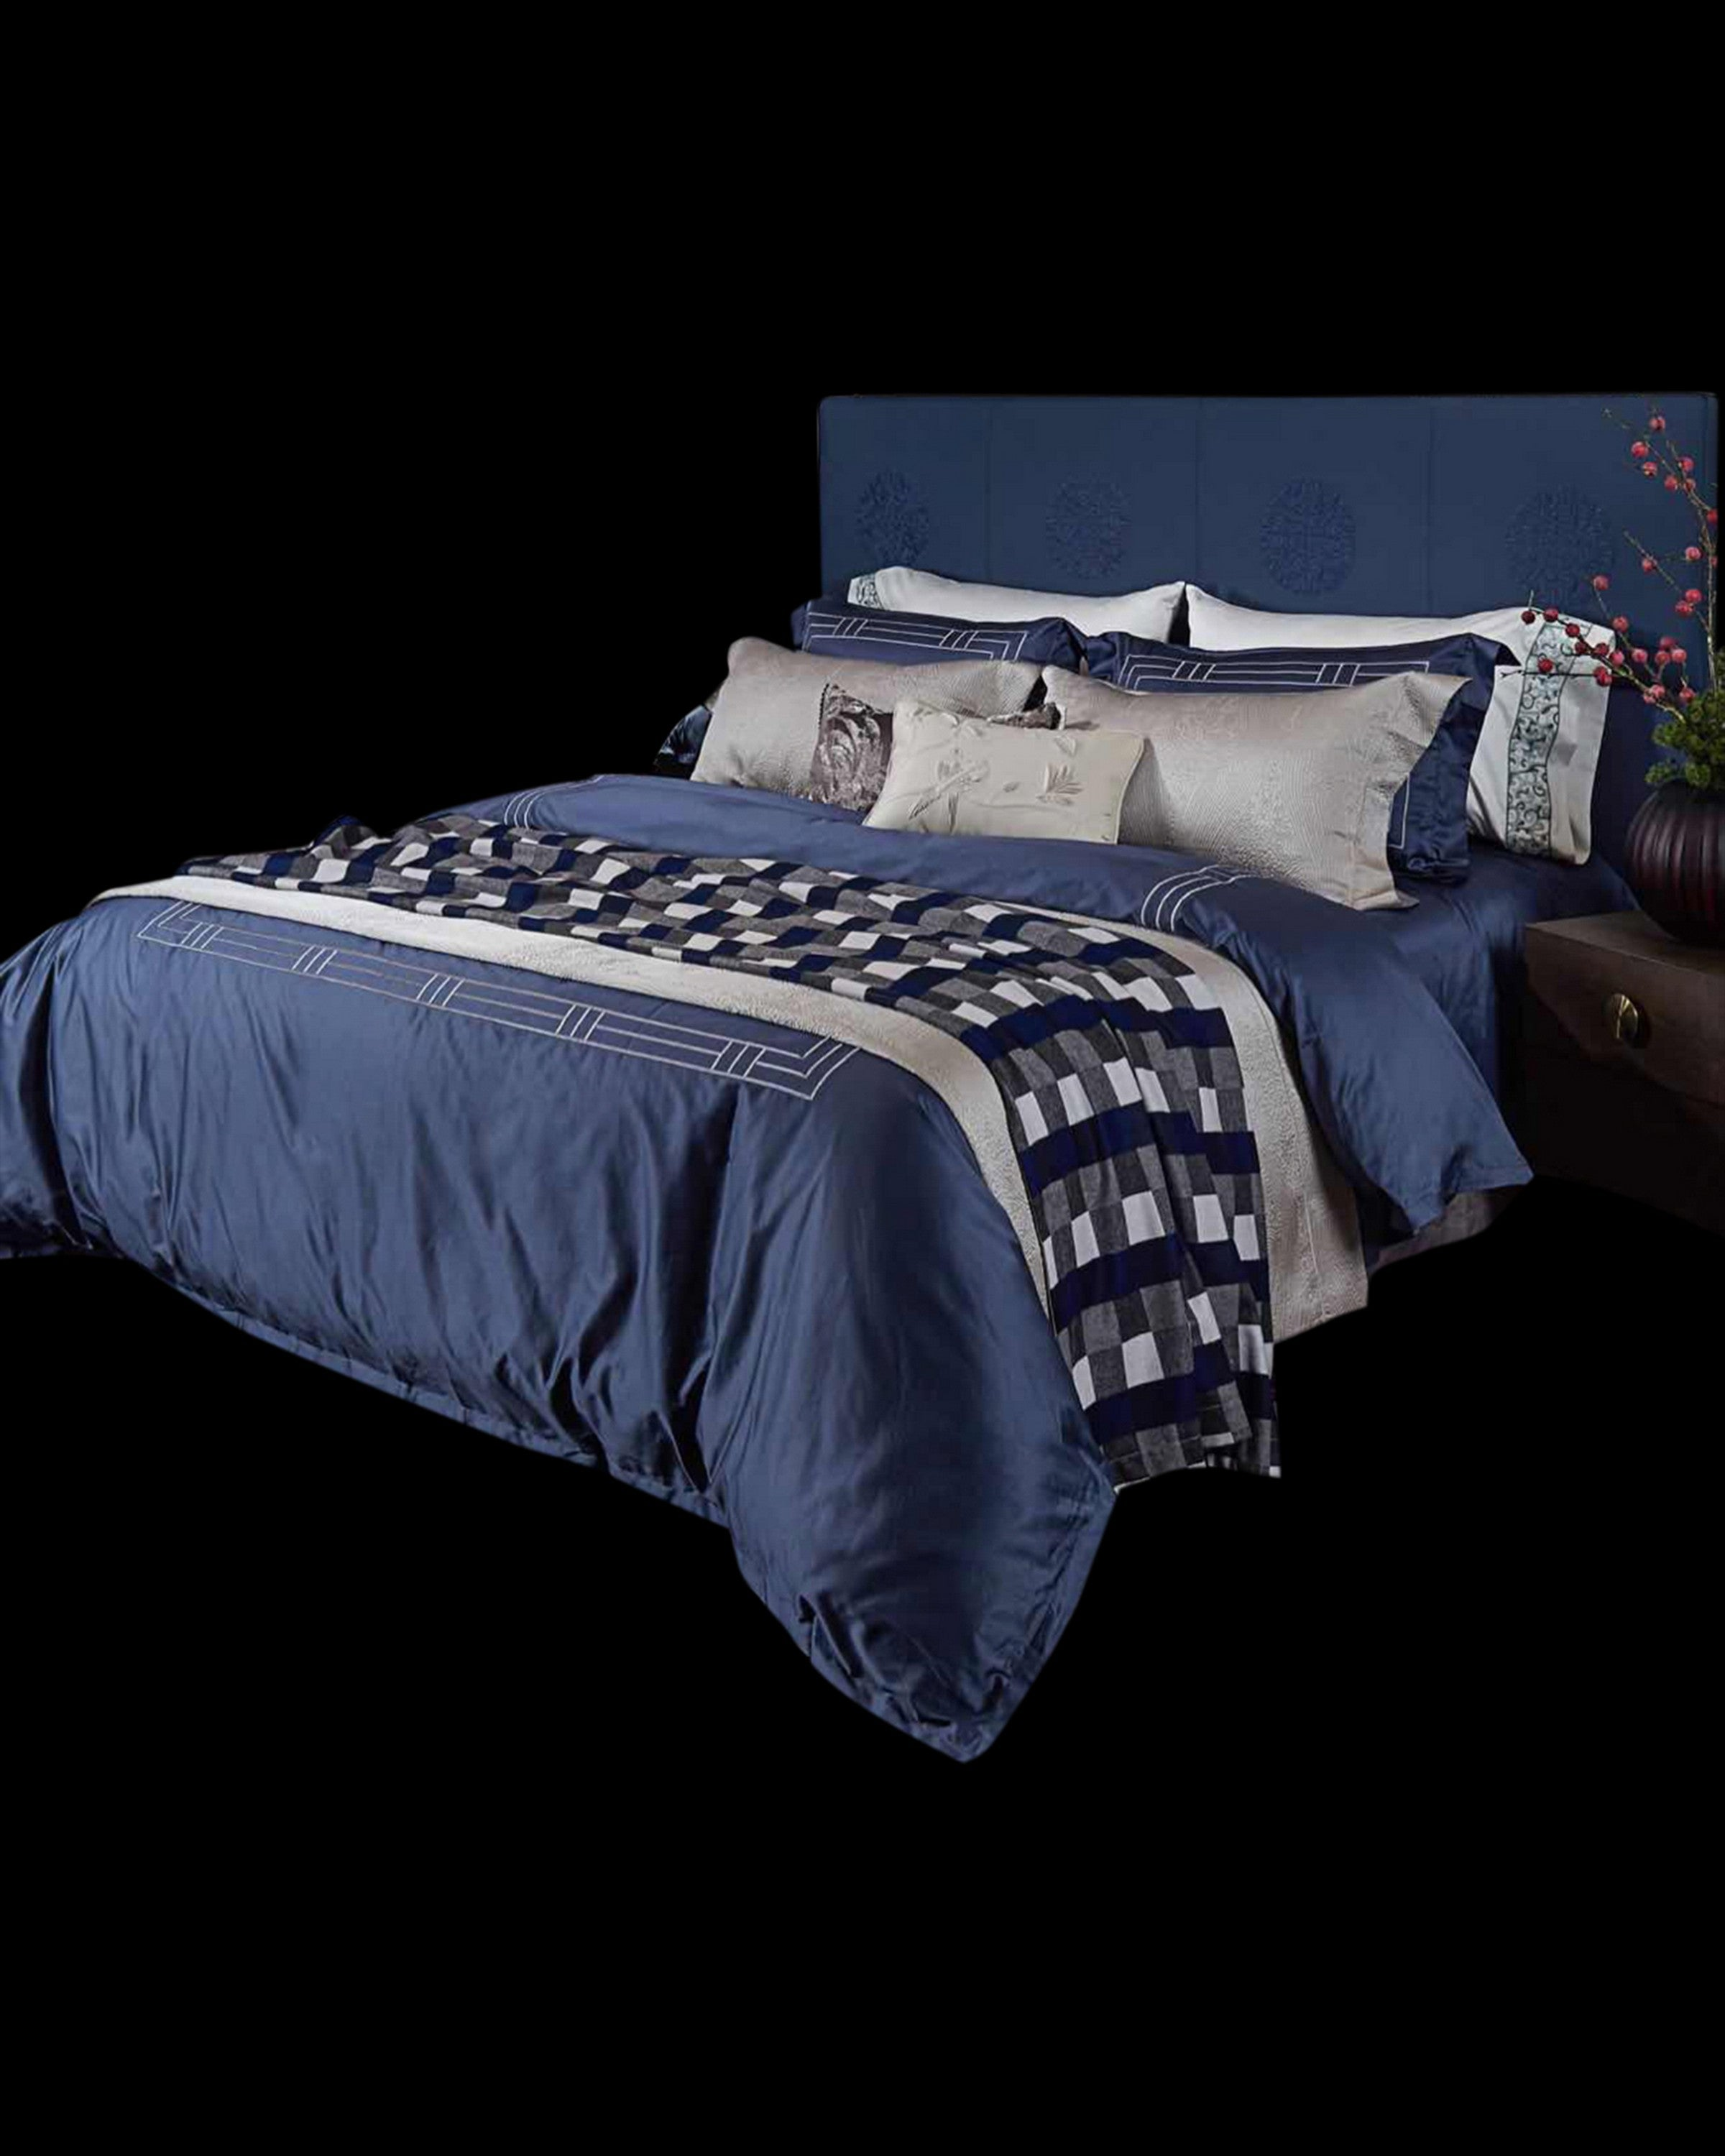 Luxury blue bed set with pillow | Angie Homes